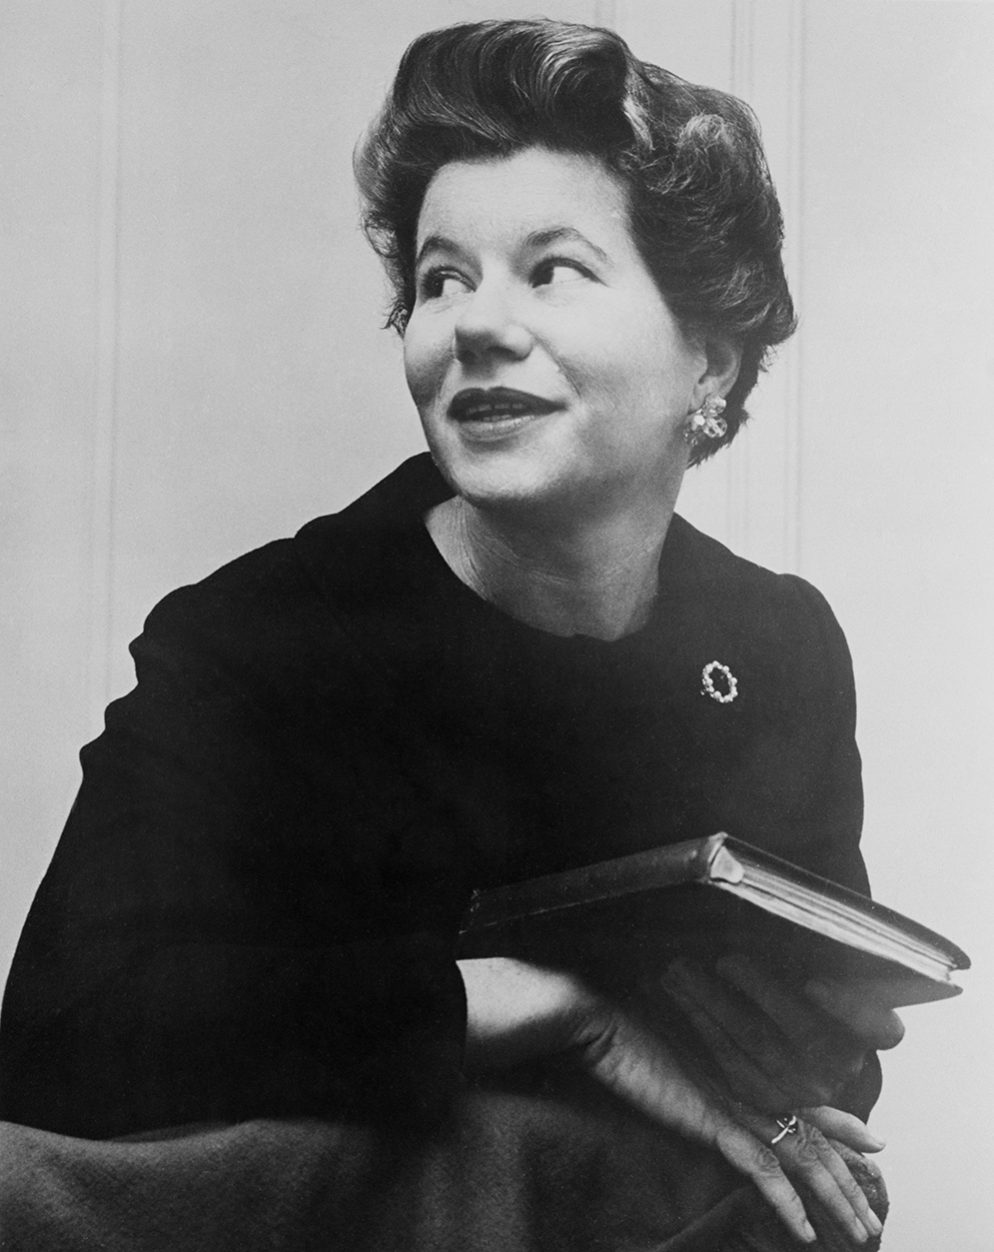 Mary McGrory: A Badass Journalist Ahead of Her Time